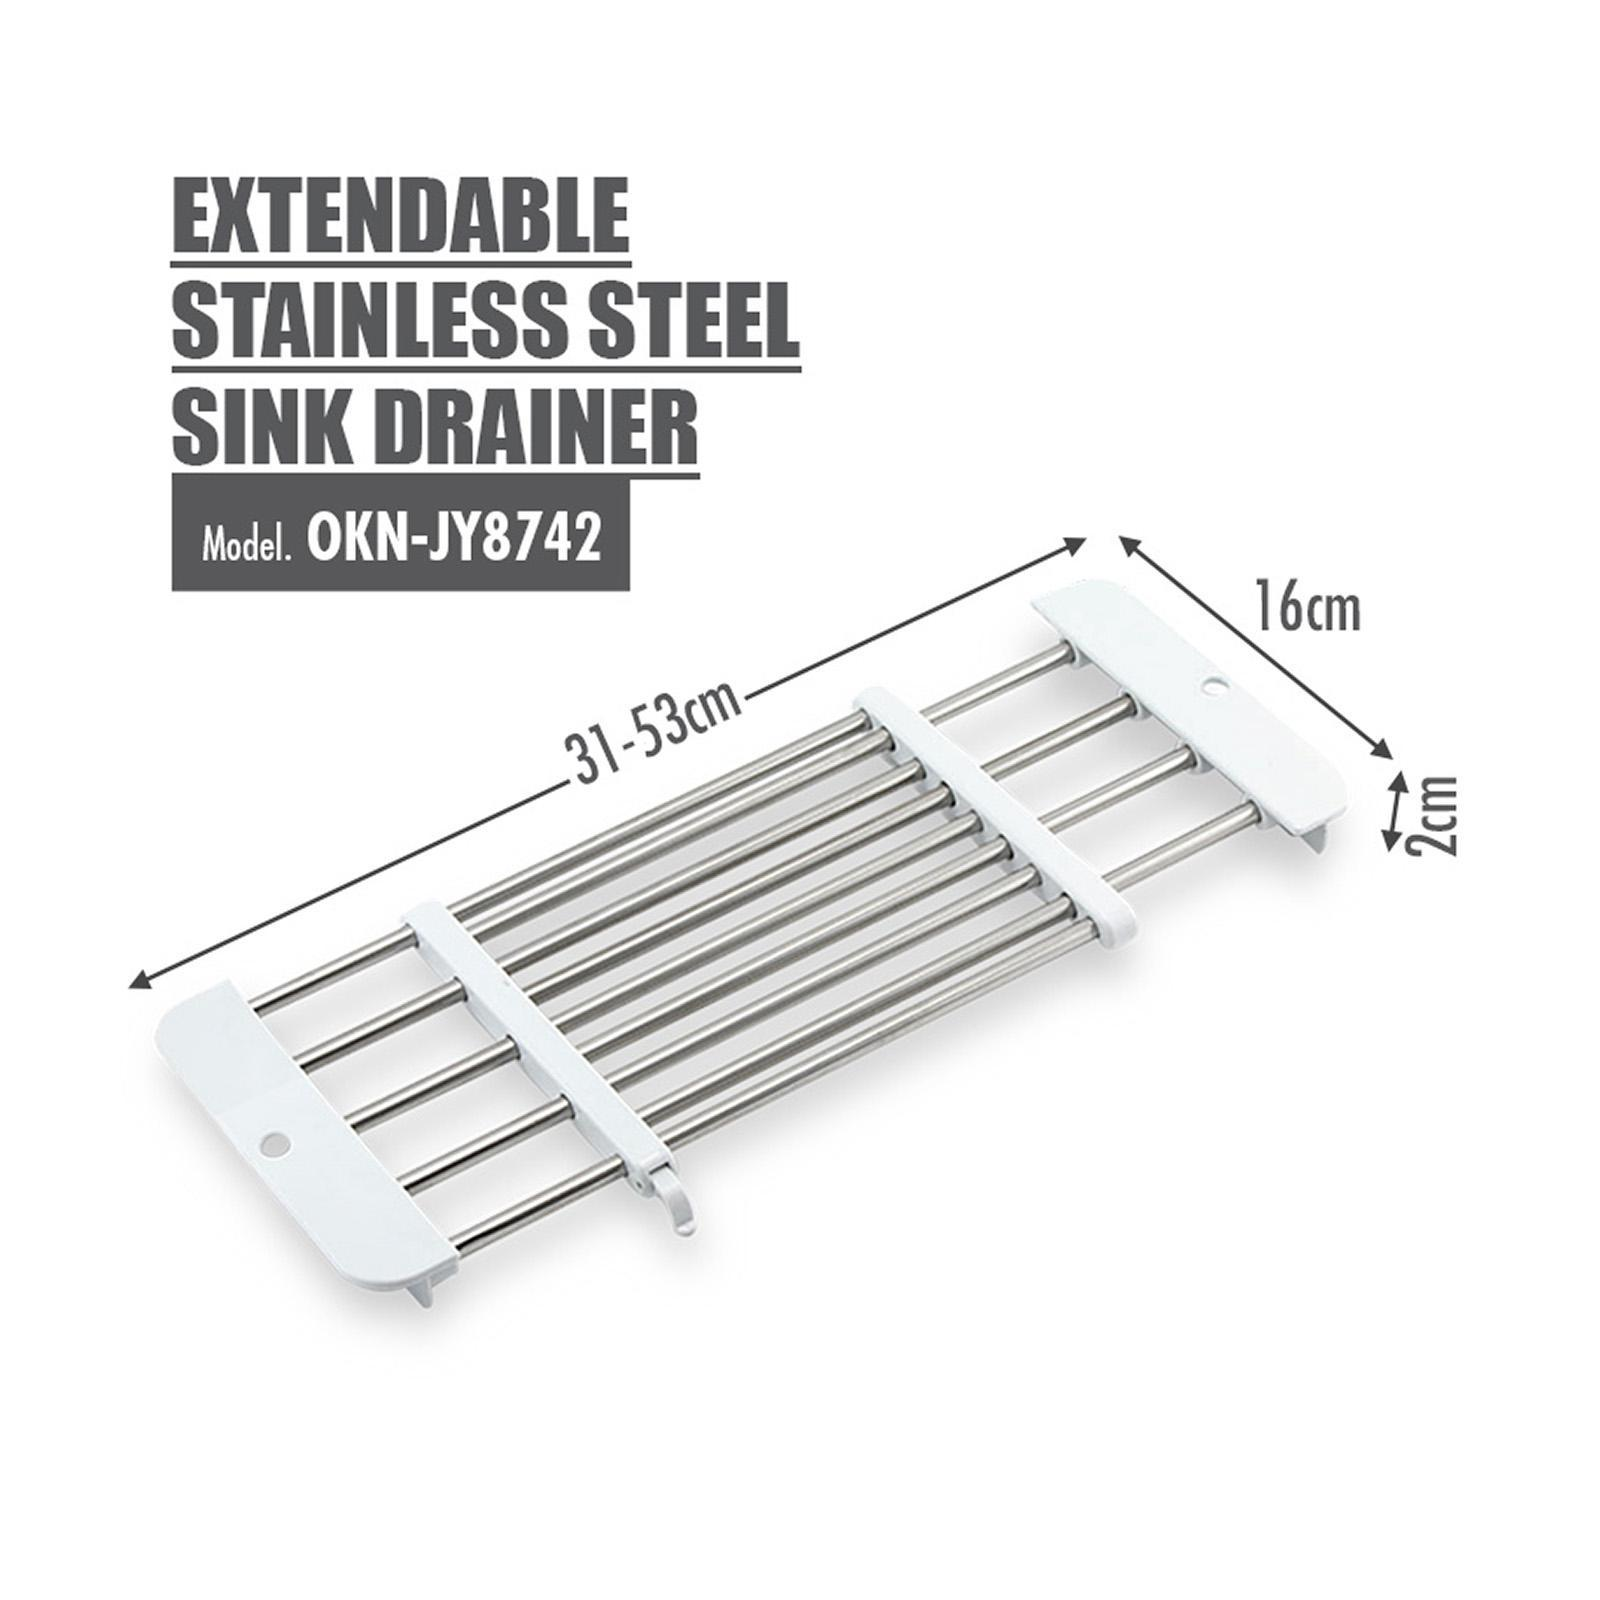 HOUZE Extendable Stainless Steel Sink Drainer